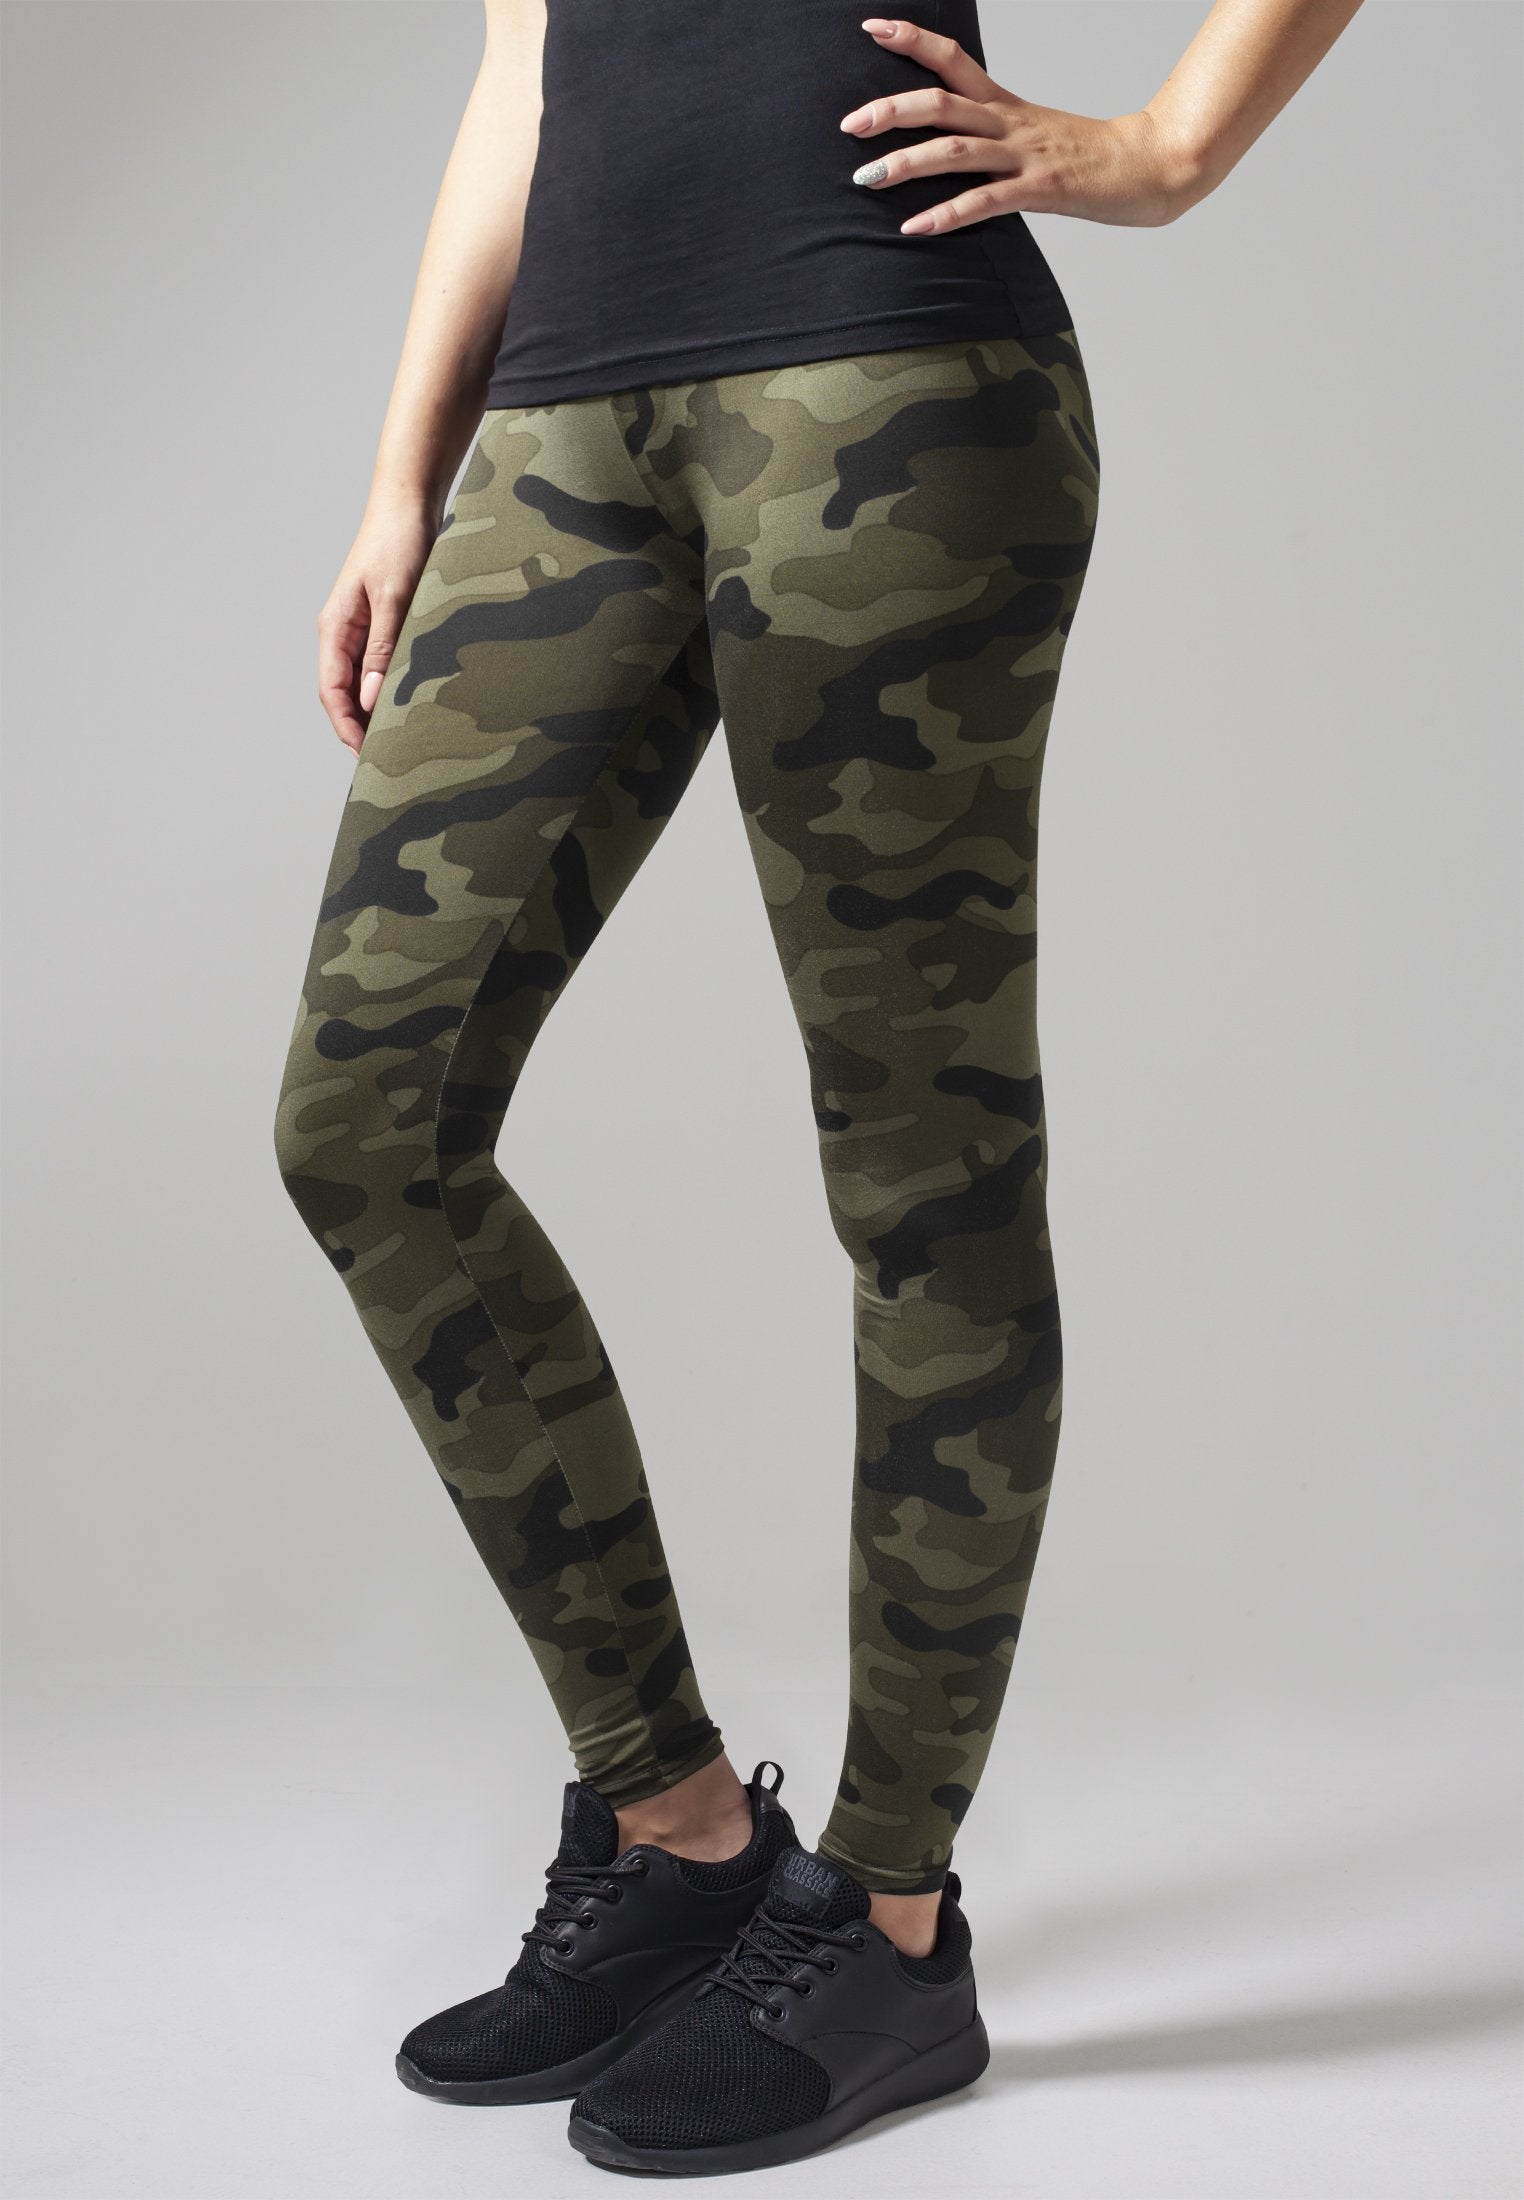 Urban Classics Ladies Camo Leggings - 91% Polyester 9% Elasthan - Style No. TB1331 - Farve/Color: Wood camo The Ladies Camo Leggings from URBAN CLASSICS convinces with a camouflage pattern, which upgrades every outfit. The elastic waistband and the soft fabric ensure a high wearing comfort.På